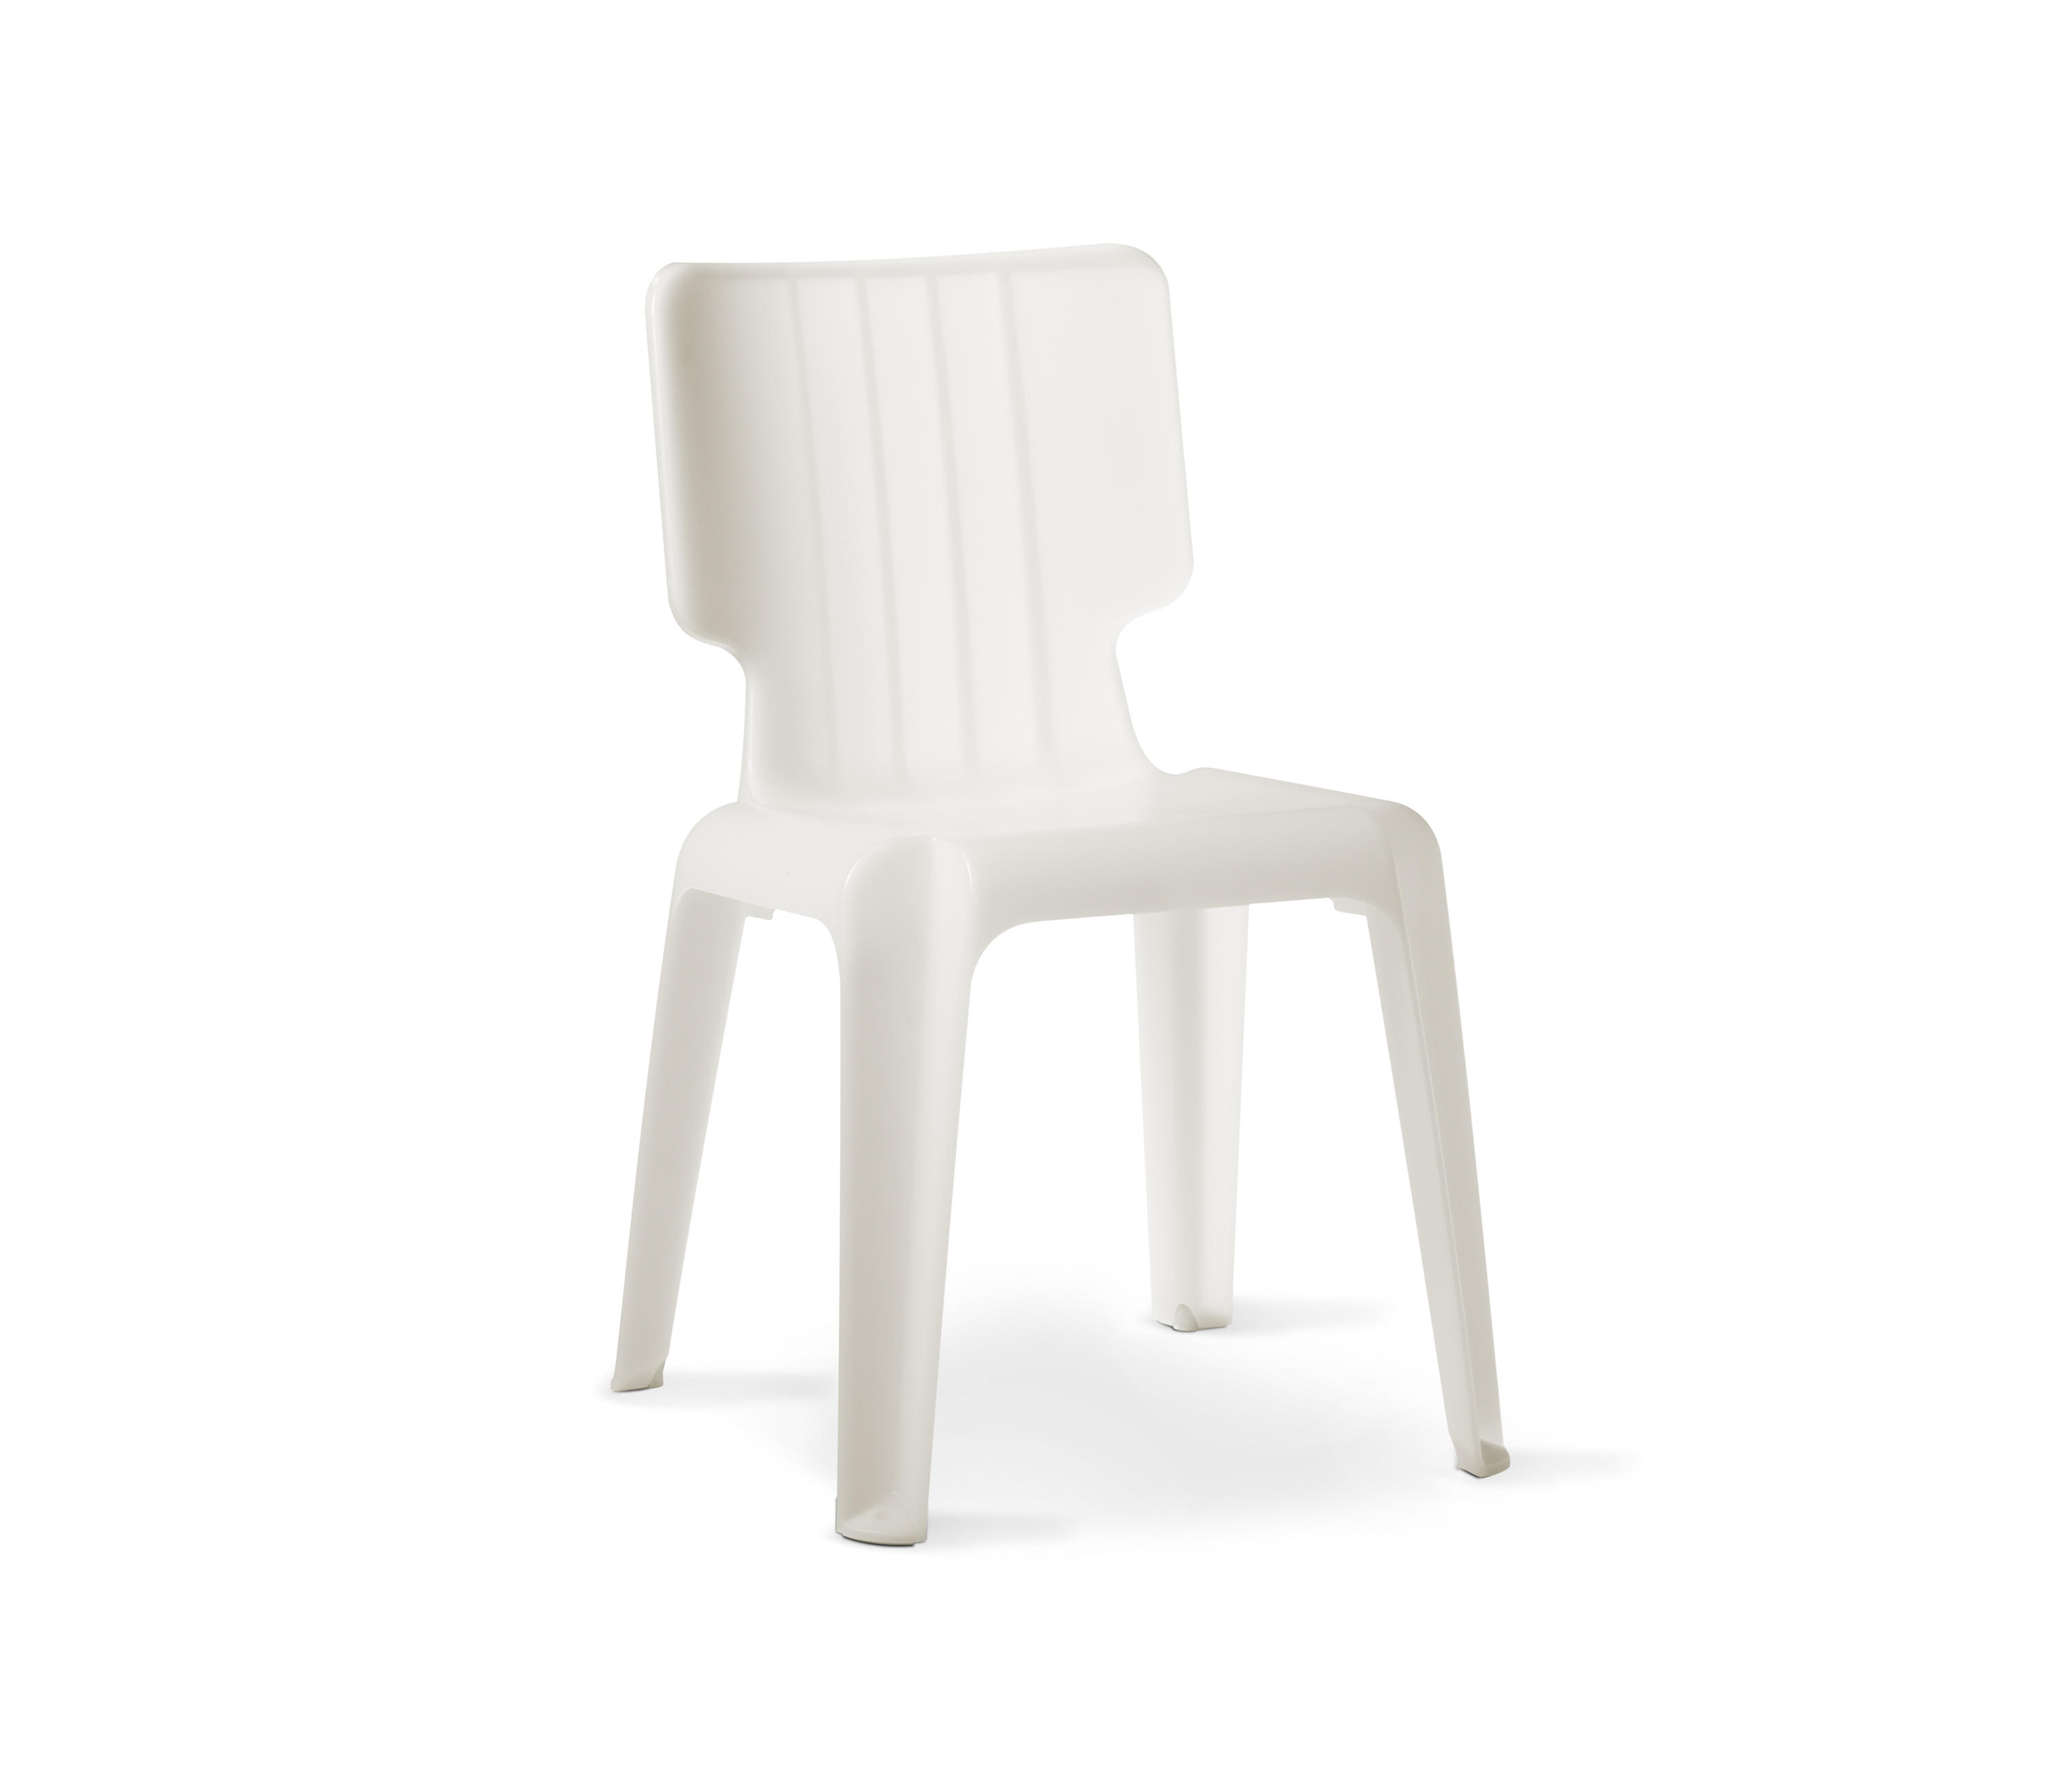 WAIT PLASTIC CHAIR Garden chairs from Authentics